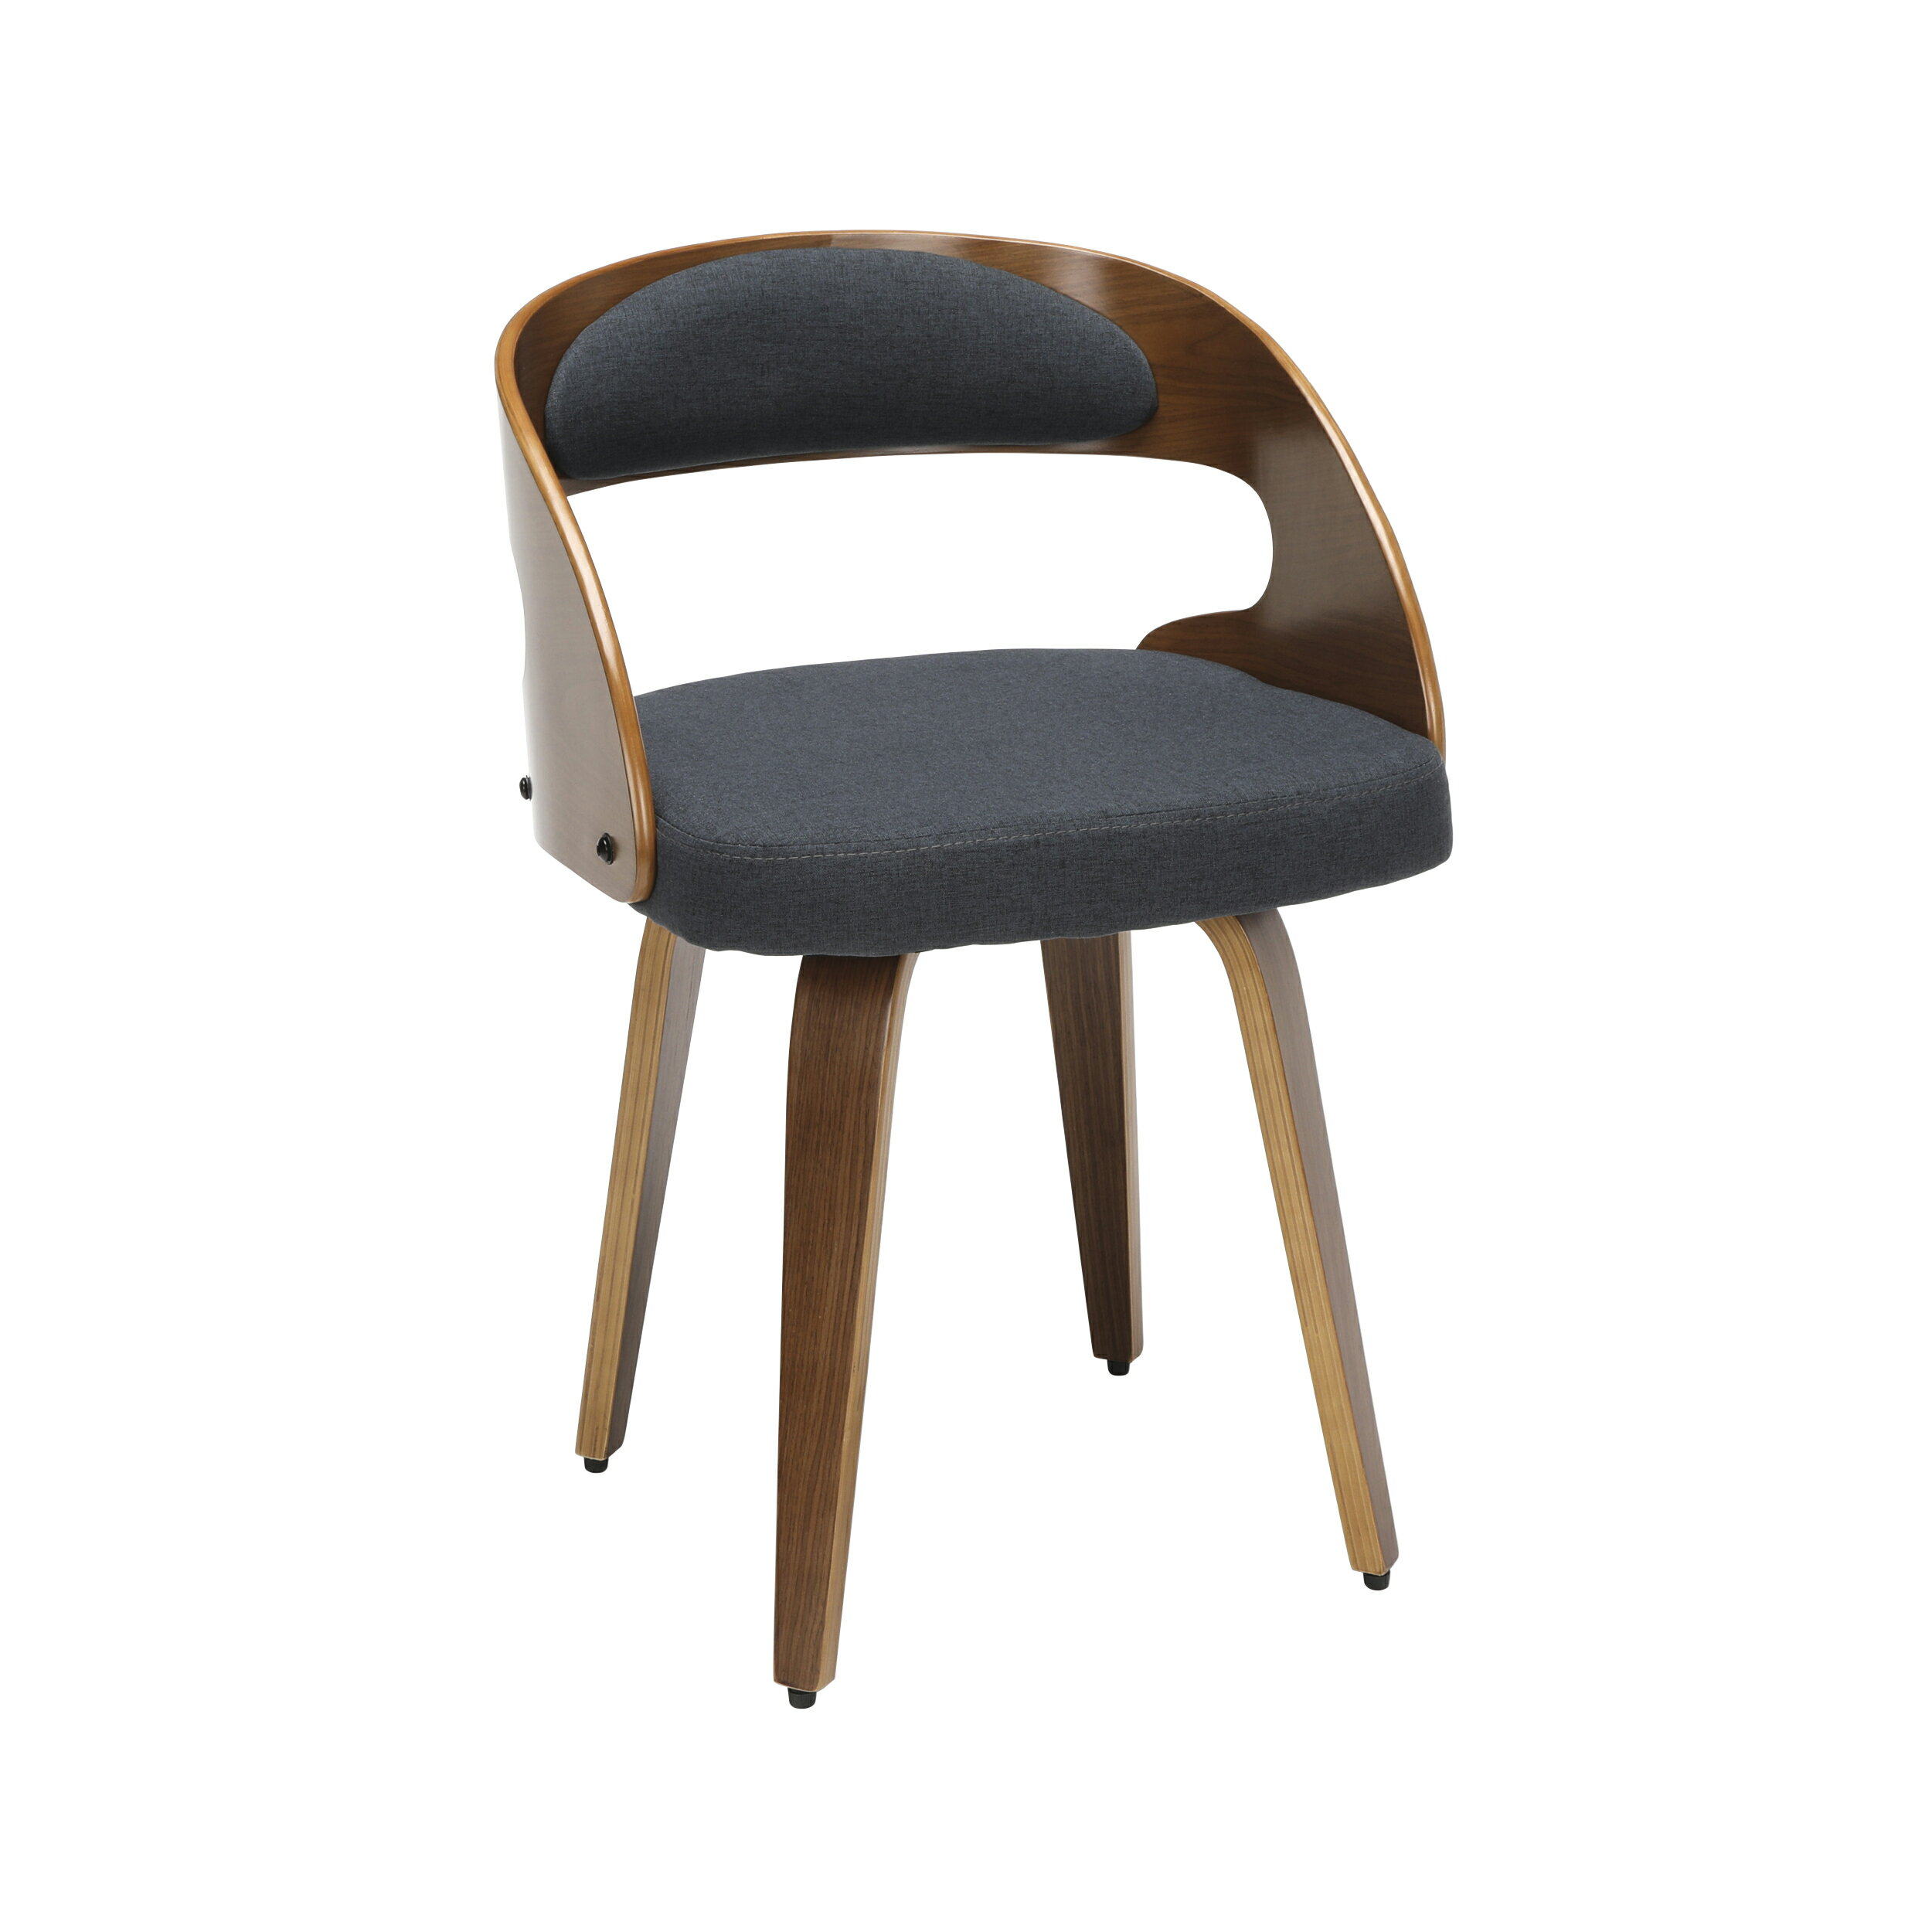 Ofm 161 Collection Mid Century Modern 18 Bentwood Frame Dining Chairs With Fabric Back And Seat Cushion In Walnut Navy 161 Wf18a Nvy